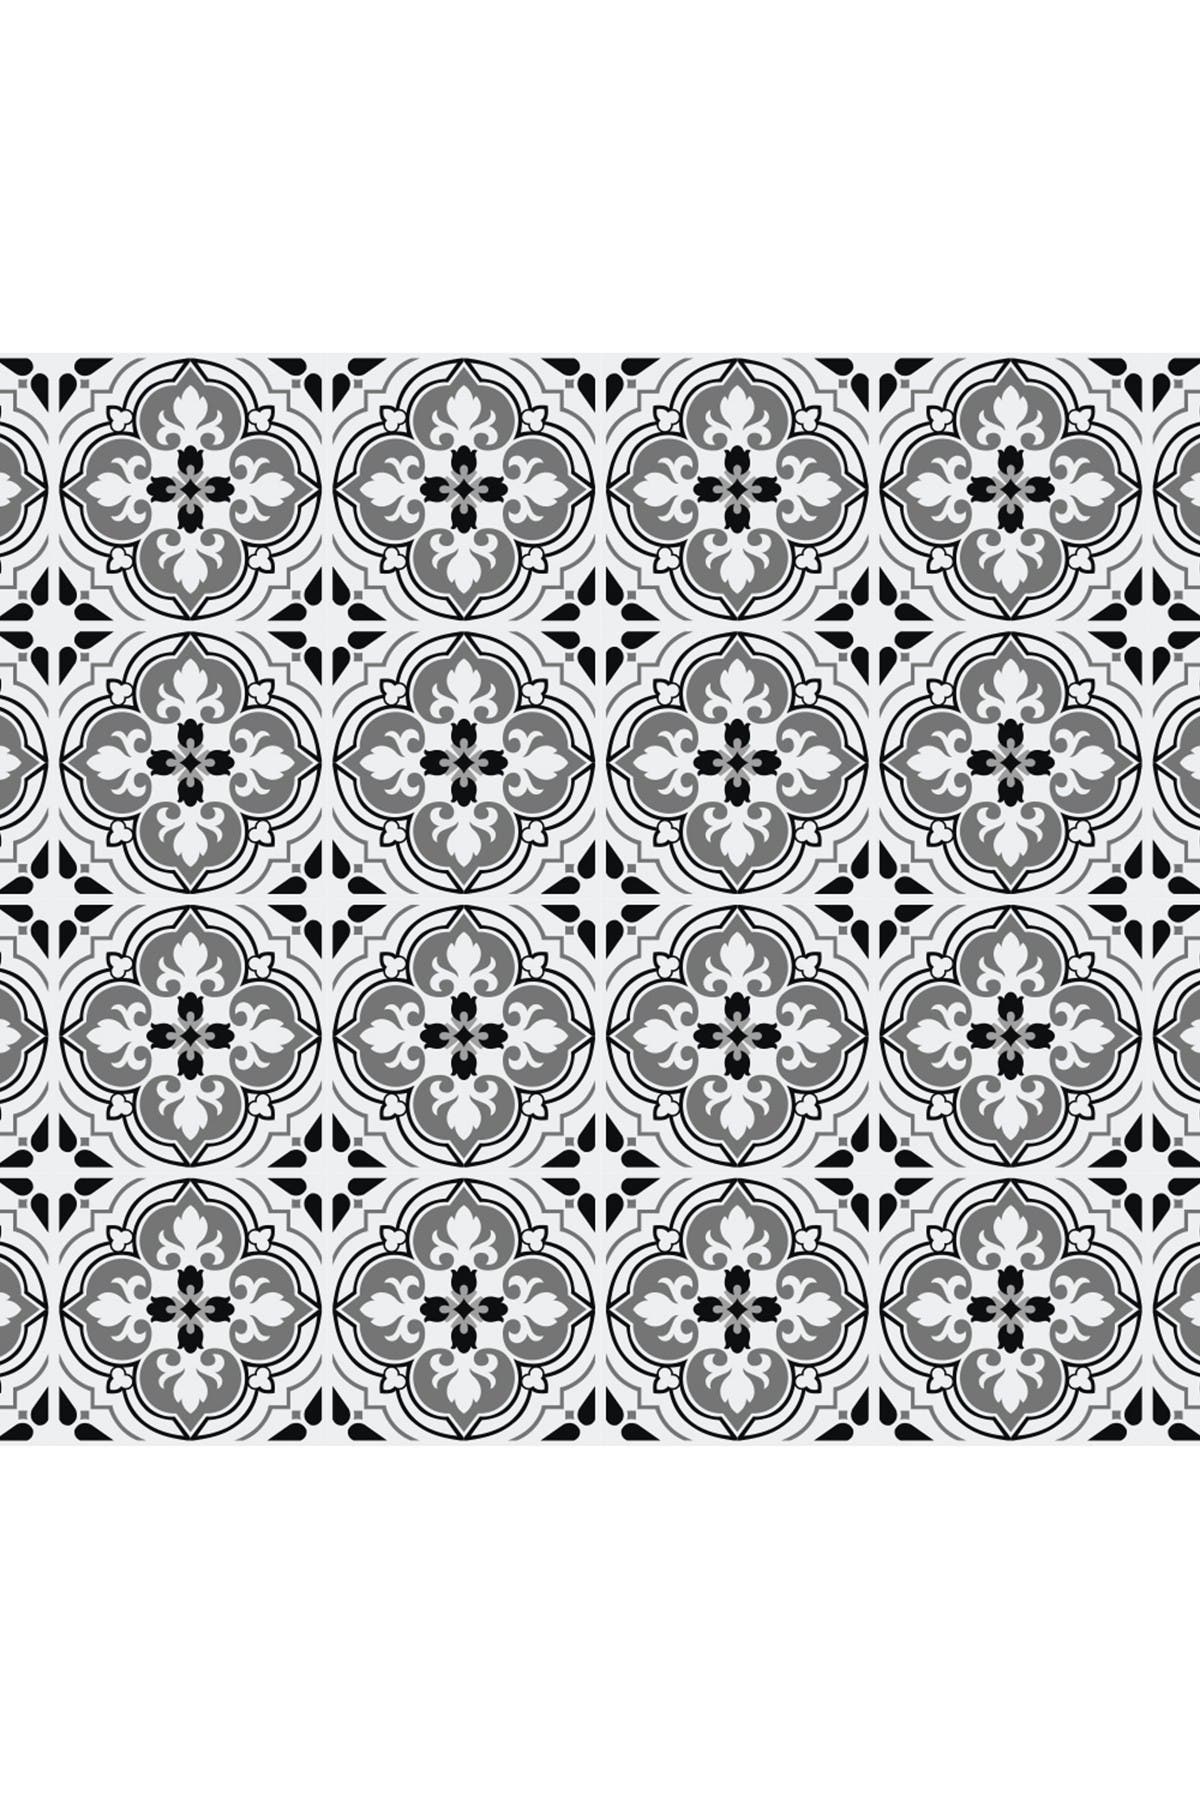 Image of WalPlus Seamless Antique Floral Tiles Design Wall Stickers - 6 x 6 inches - 24 Pieces